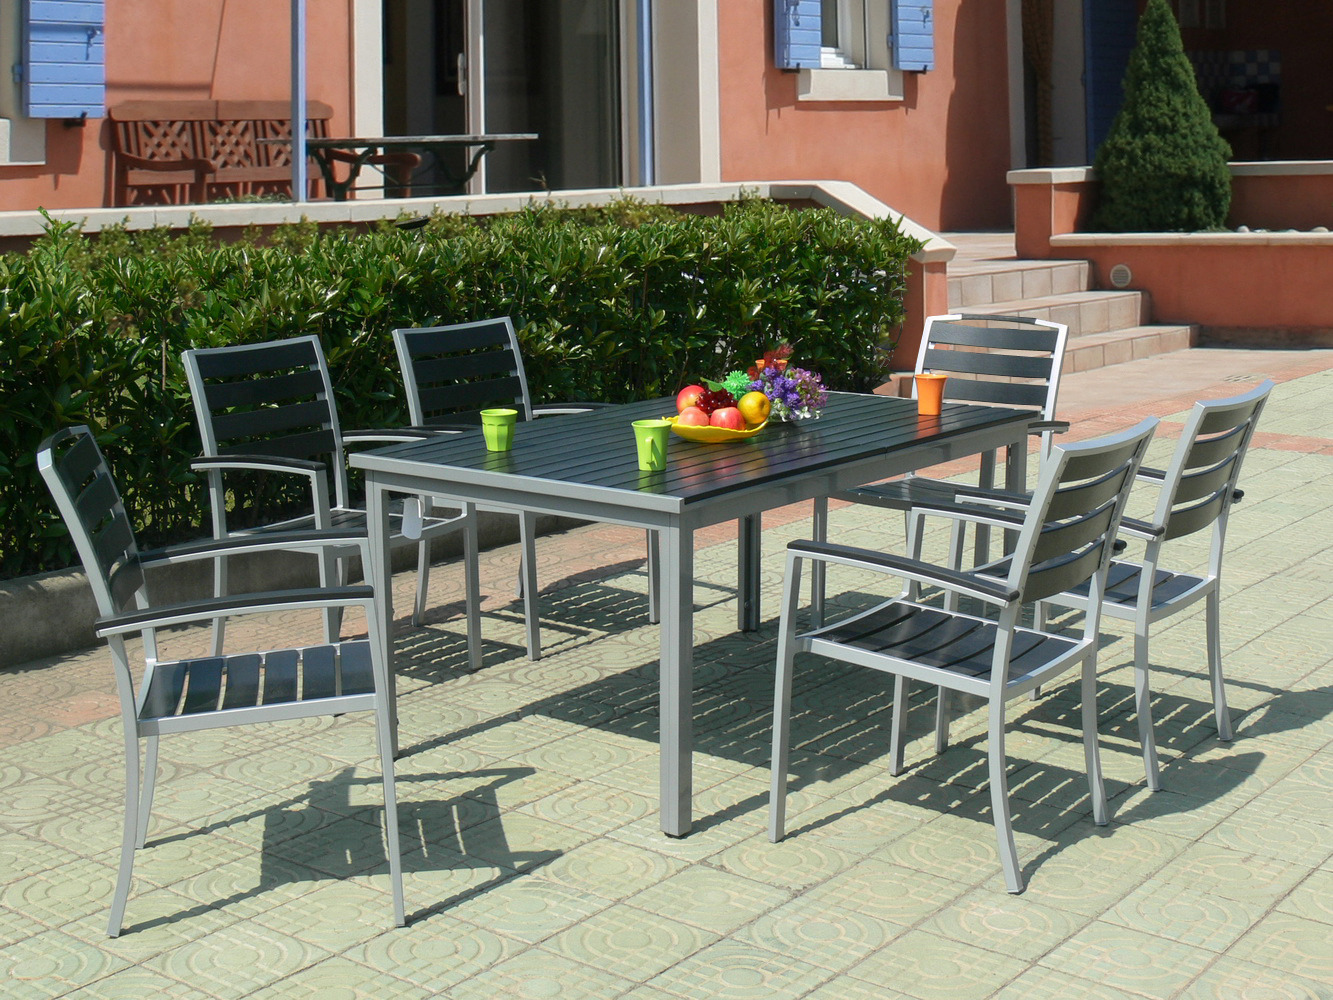 Salon de jardin alu bois composite 1 table 150 210 x - Table salon de jardin alu et composite ...